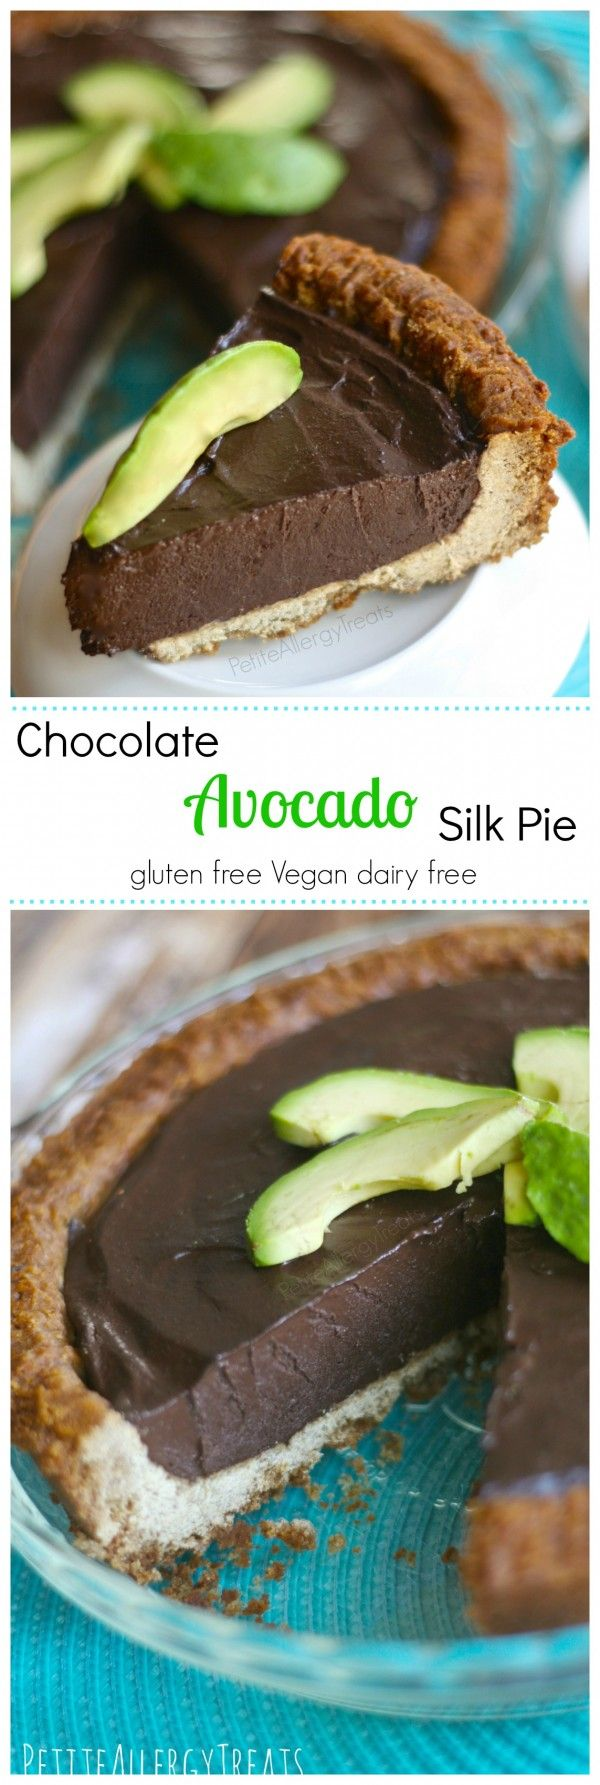 Chocolate Silk Pie with Avocado (gluten free Vegan dairy free) Decadent chocolate and avocado blended to a silky pie, no added fat or sugar. avocado, dairy free